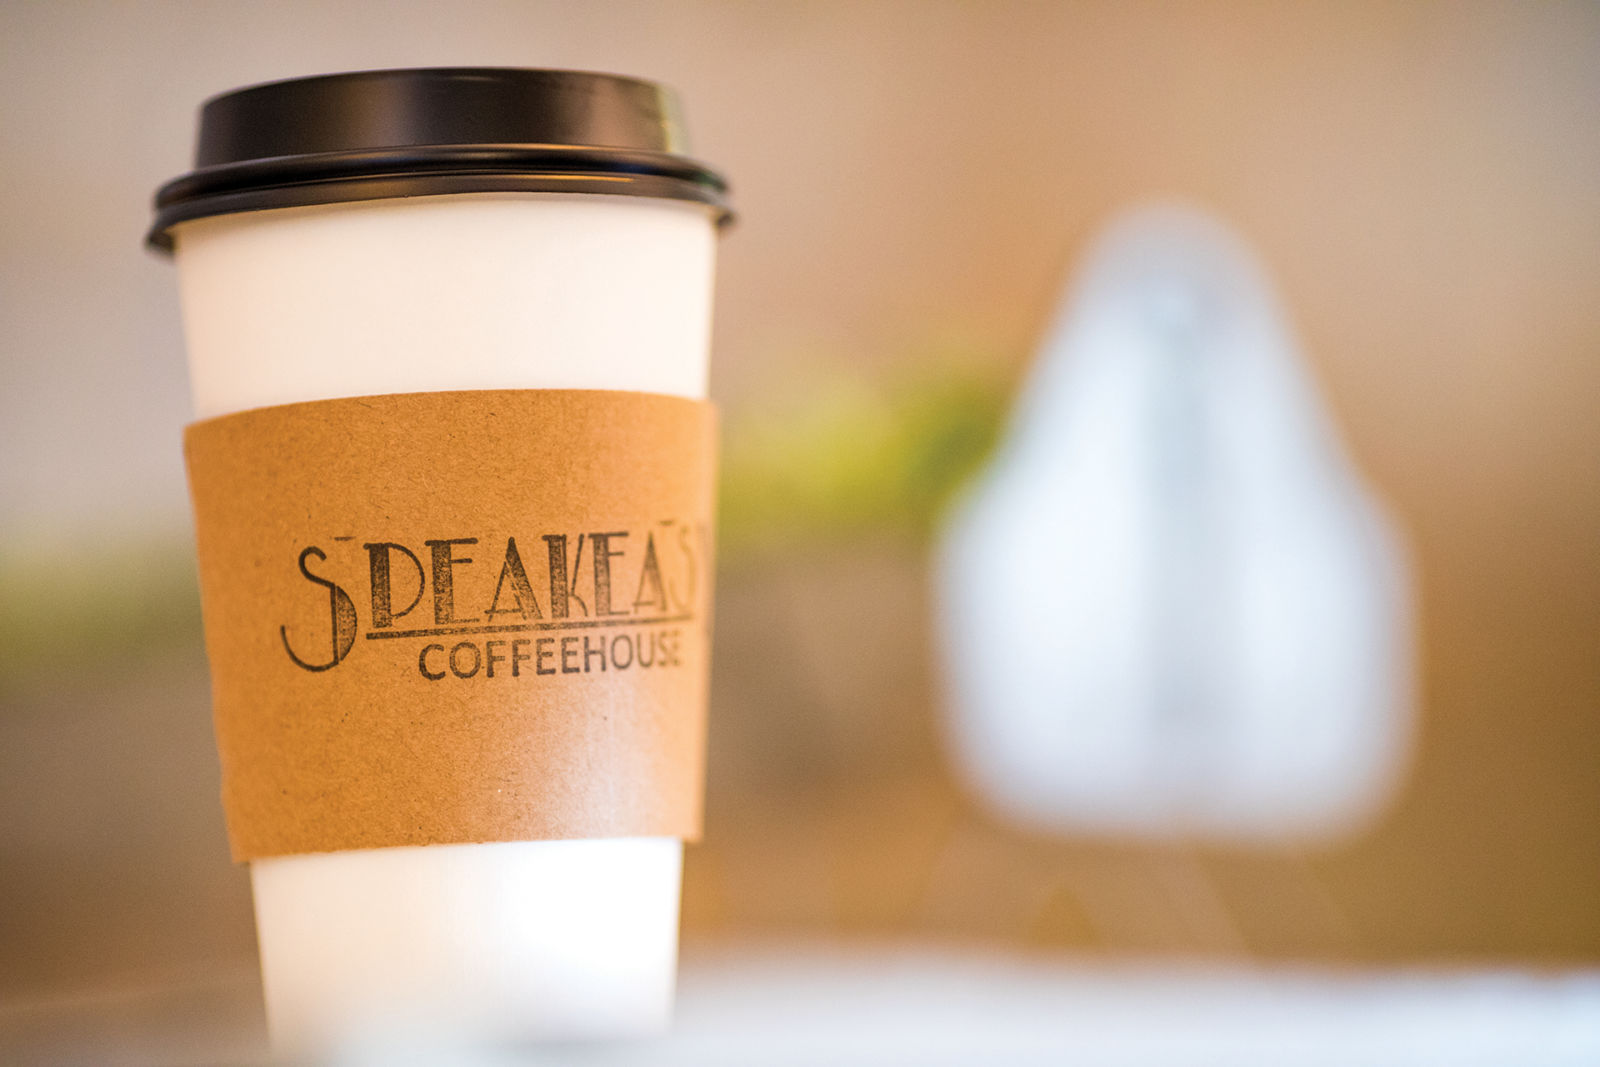 disposable coffee cup with Speakeasy Coffeehouse logo